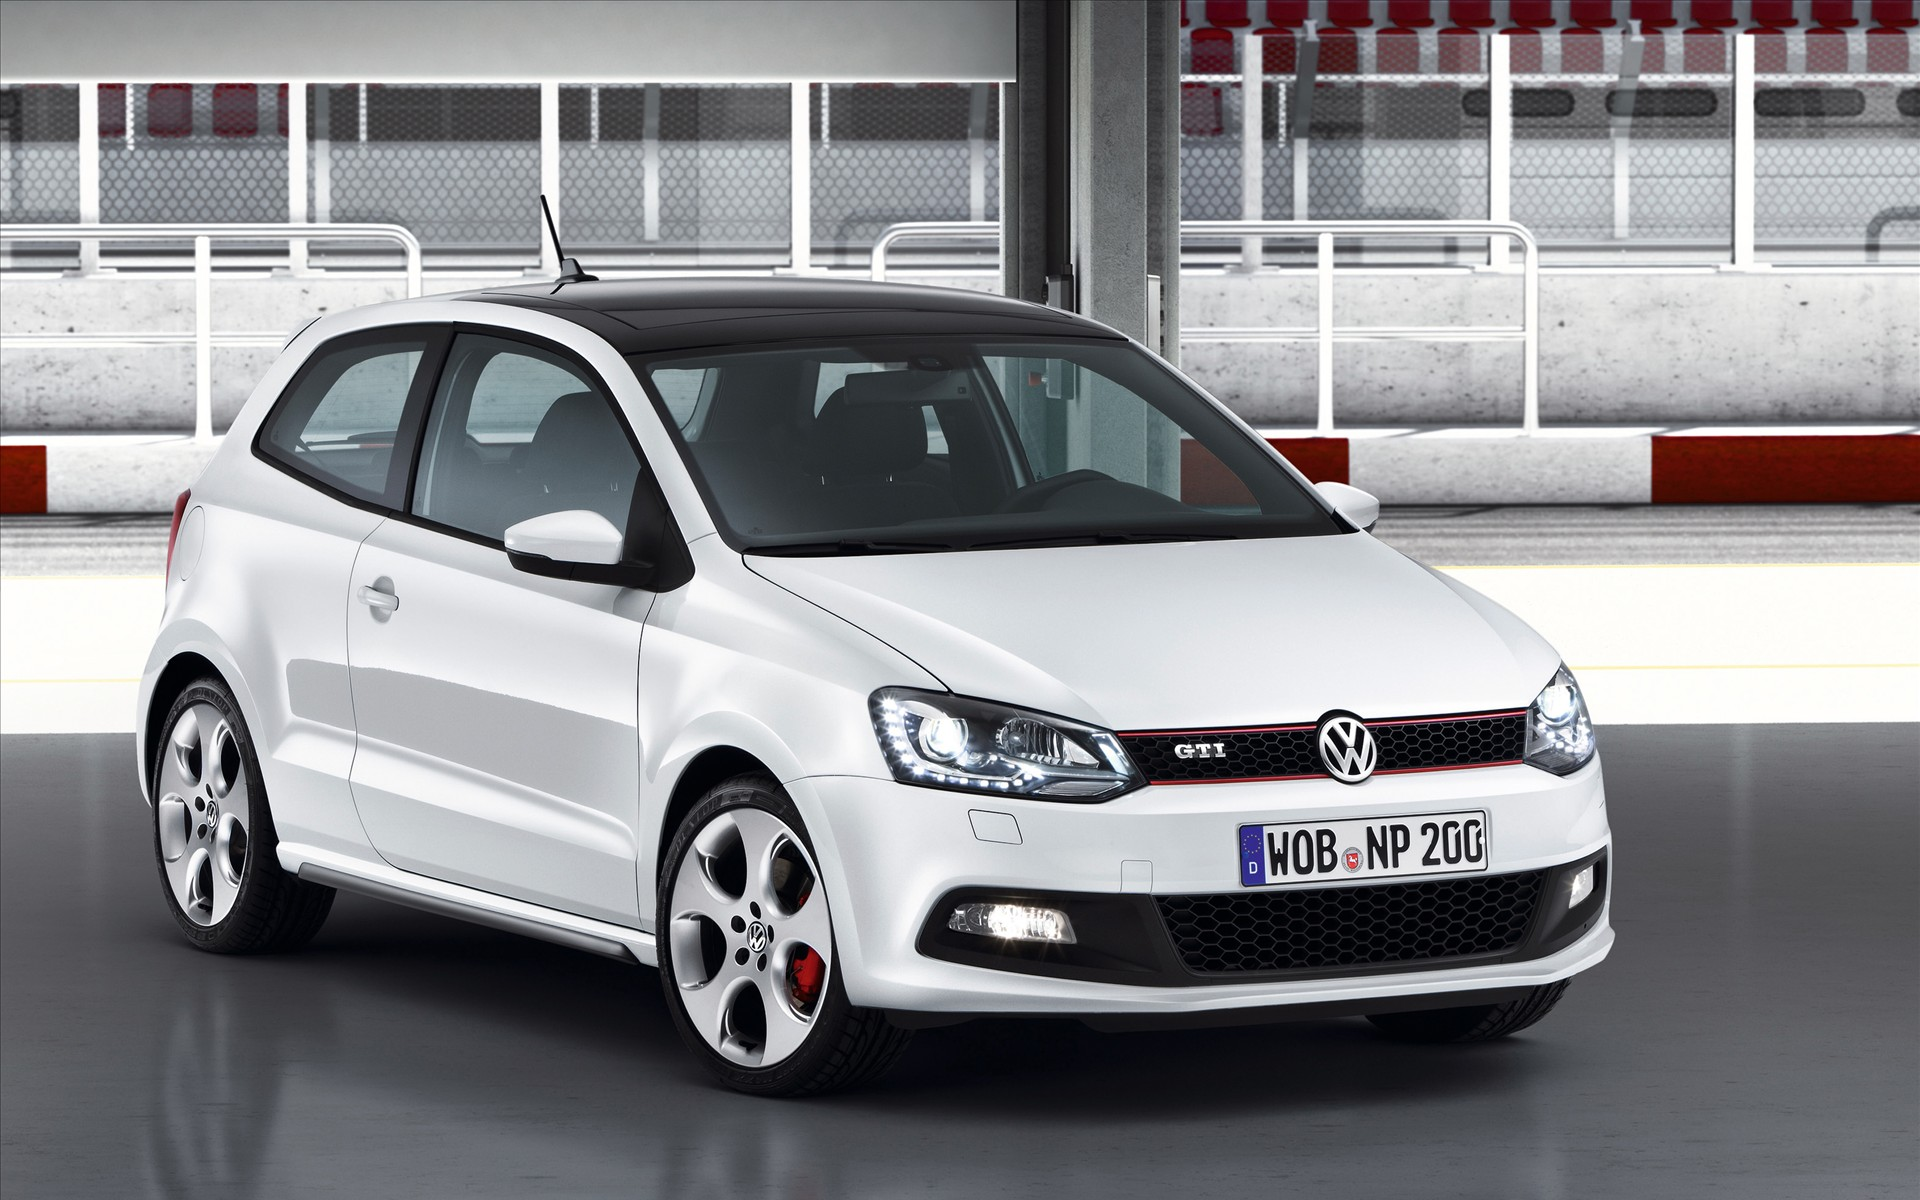 Volkswagen Polo GTI 2011 Wallpapers 1920x1200